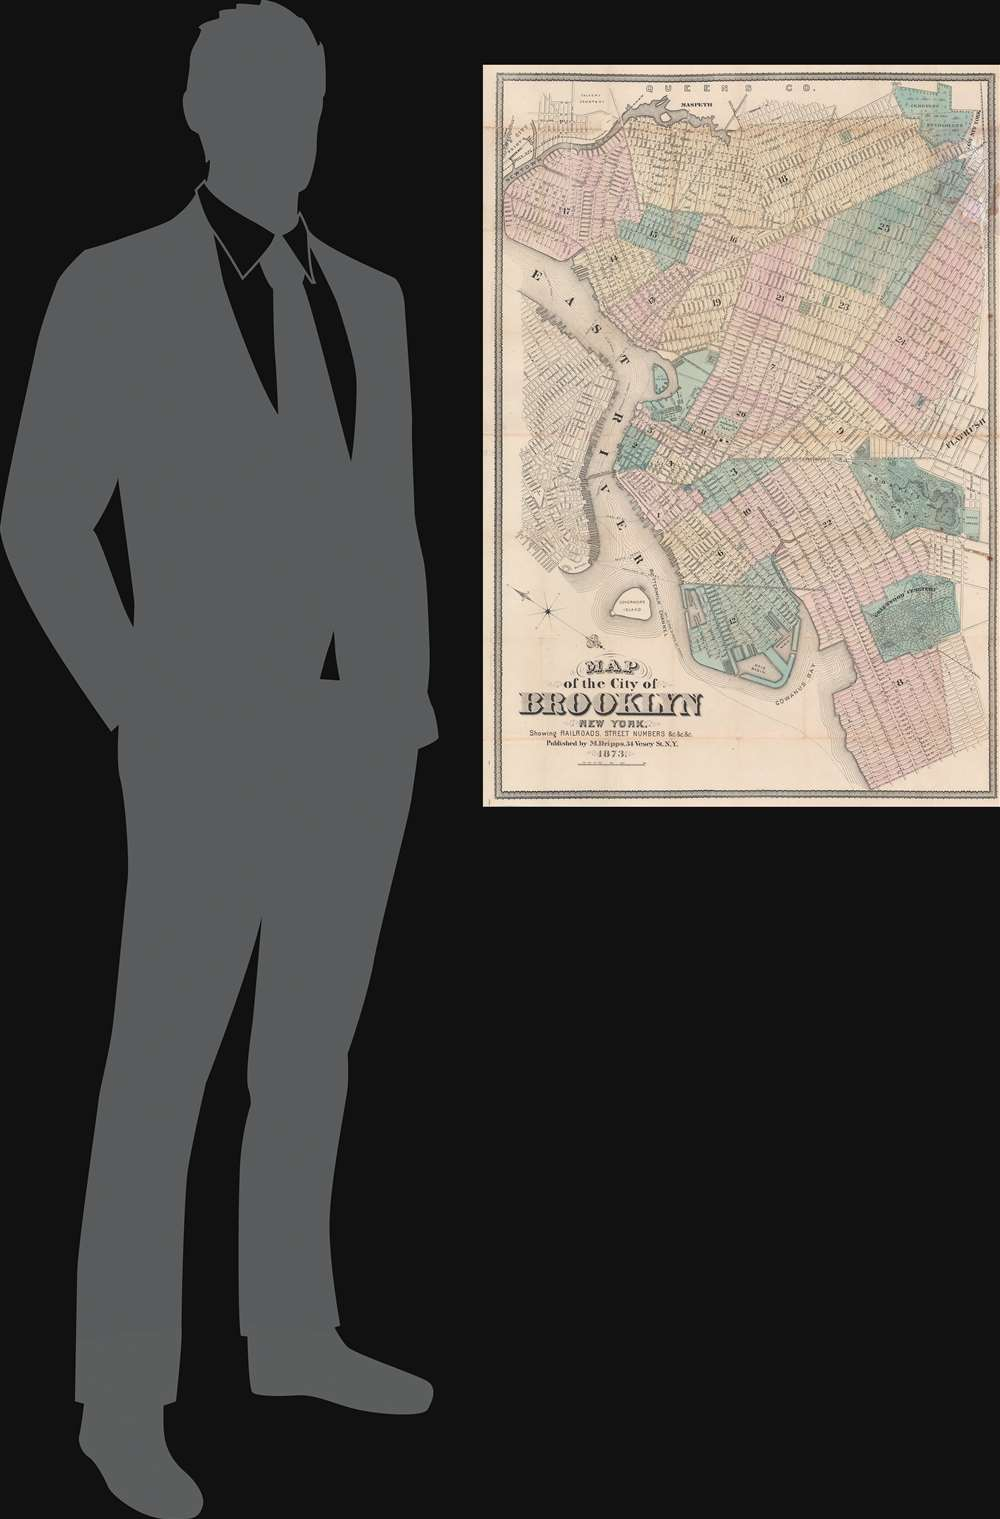 Map of the City of Brooklyn New York. - Alternate View 1